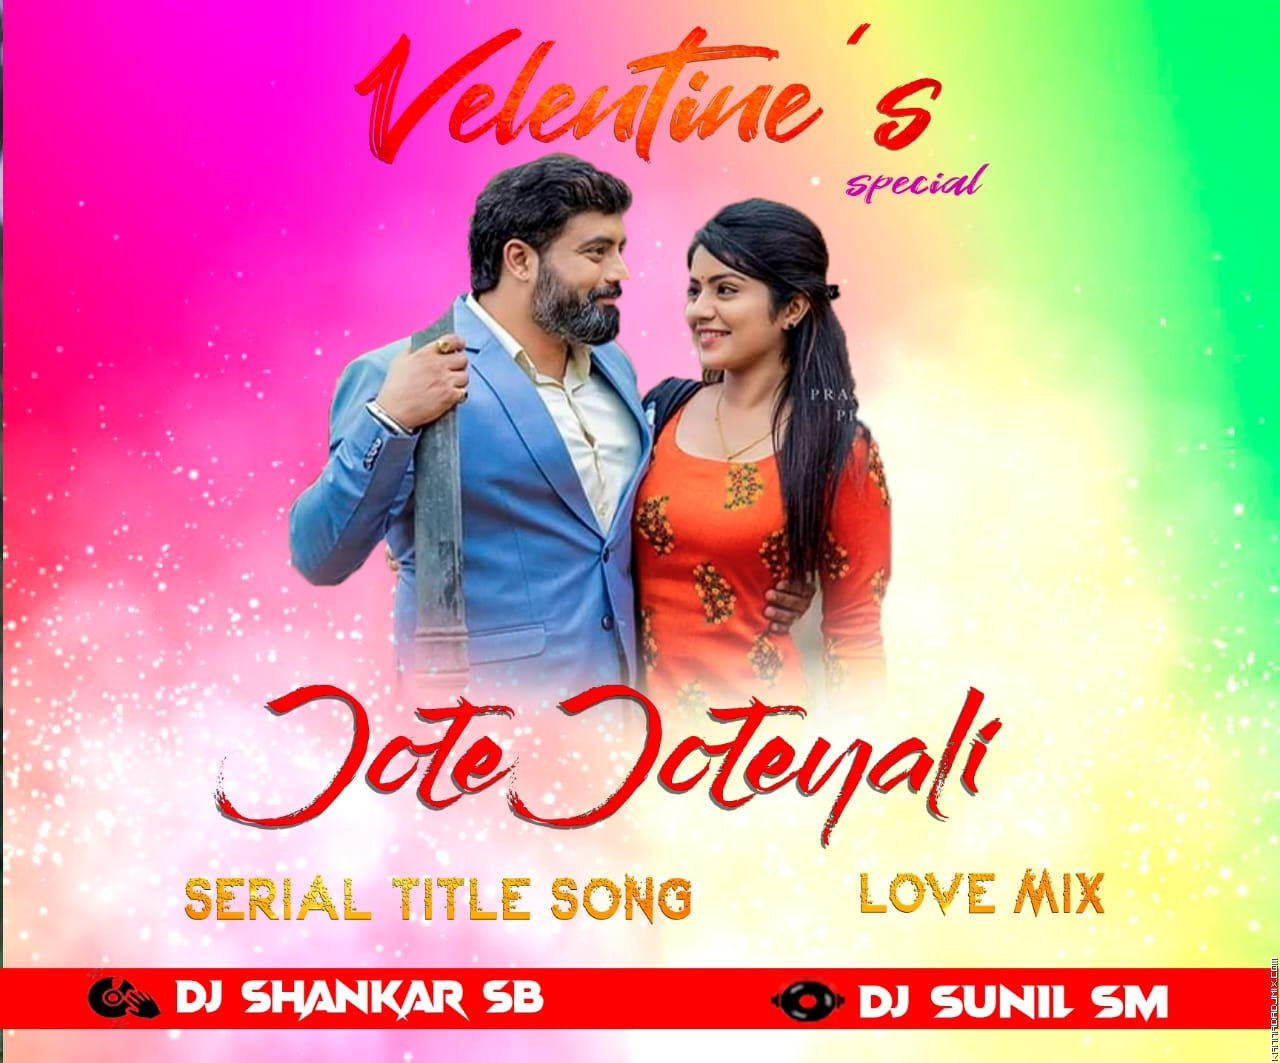 JOTE_JOTEYALI_Serial_Title_Song_REMIX_DJ_SHANKAR_SB_x_DJ_SUNIL_SM.mp3